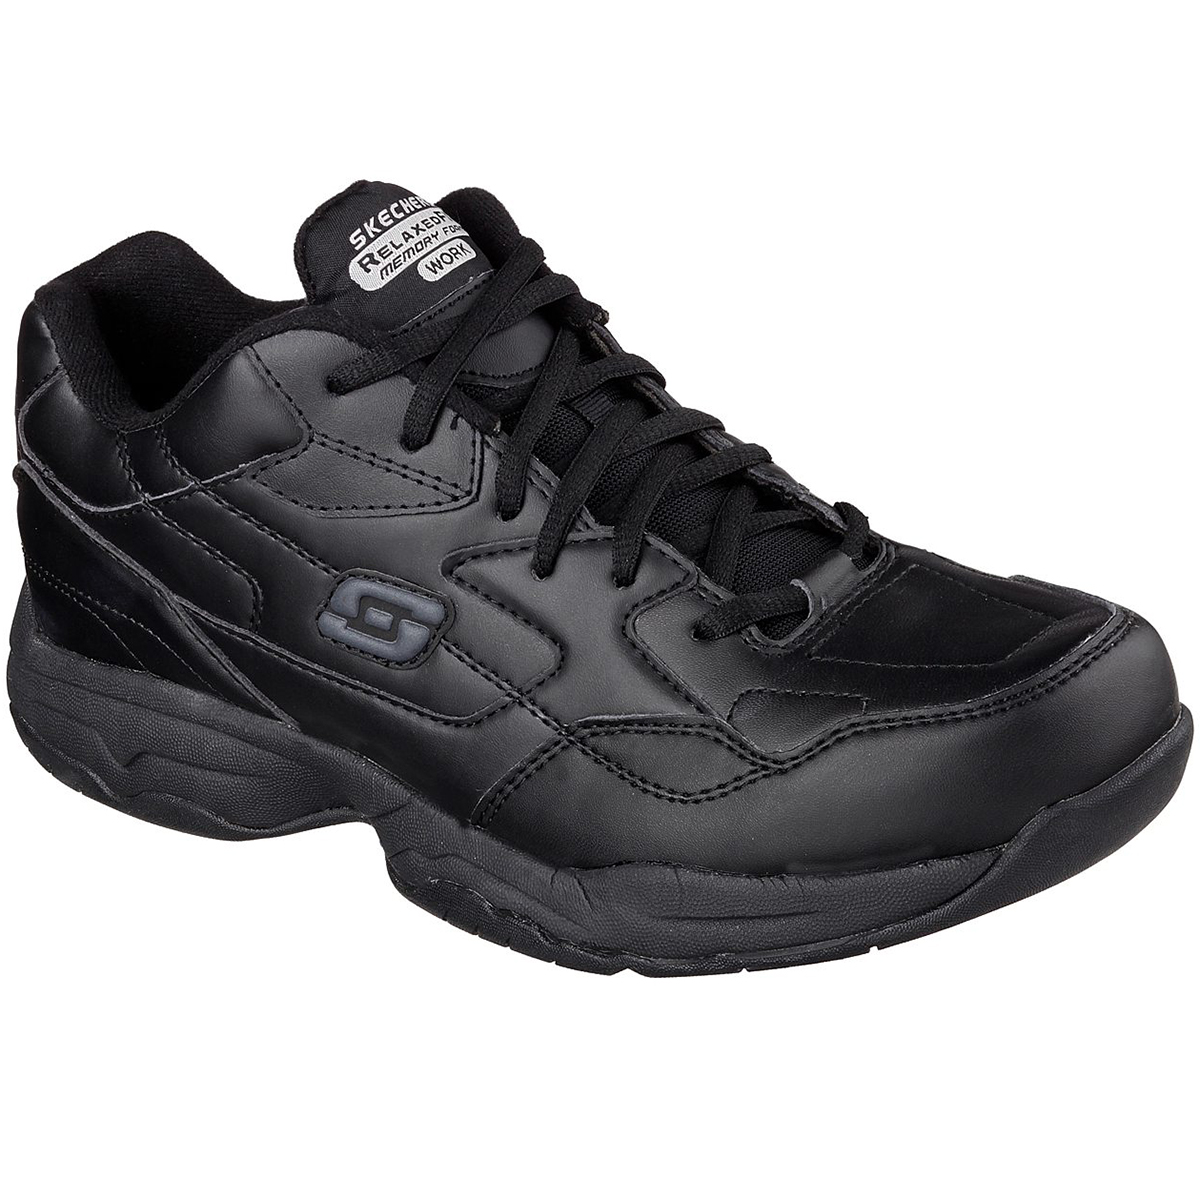 Skechers Men's Work Relaxed Fit: Felton -  Altair Work Shoes - Black, 8.5